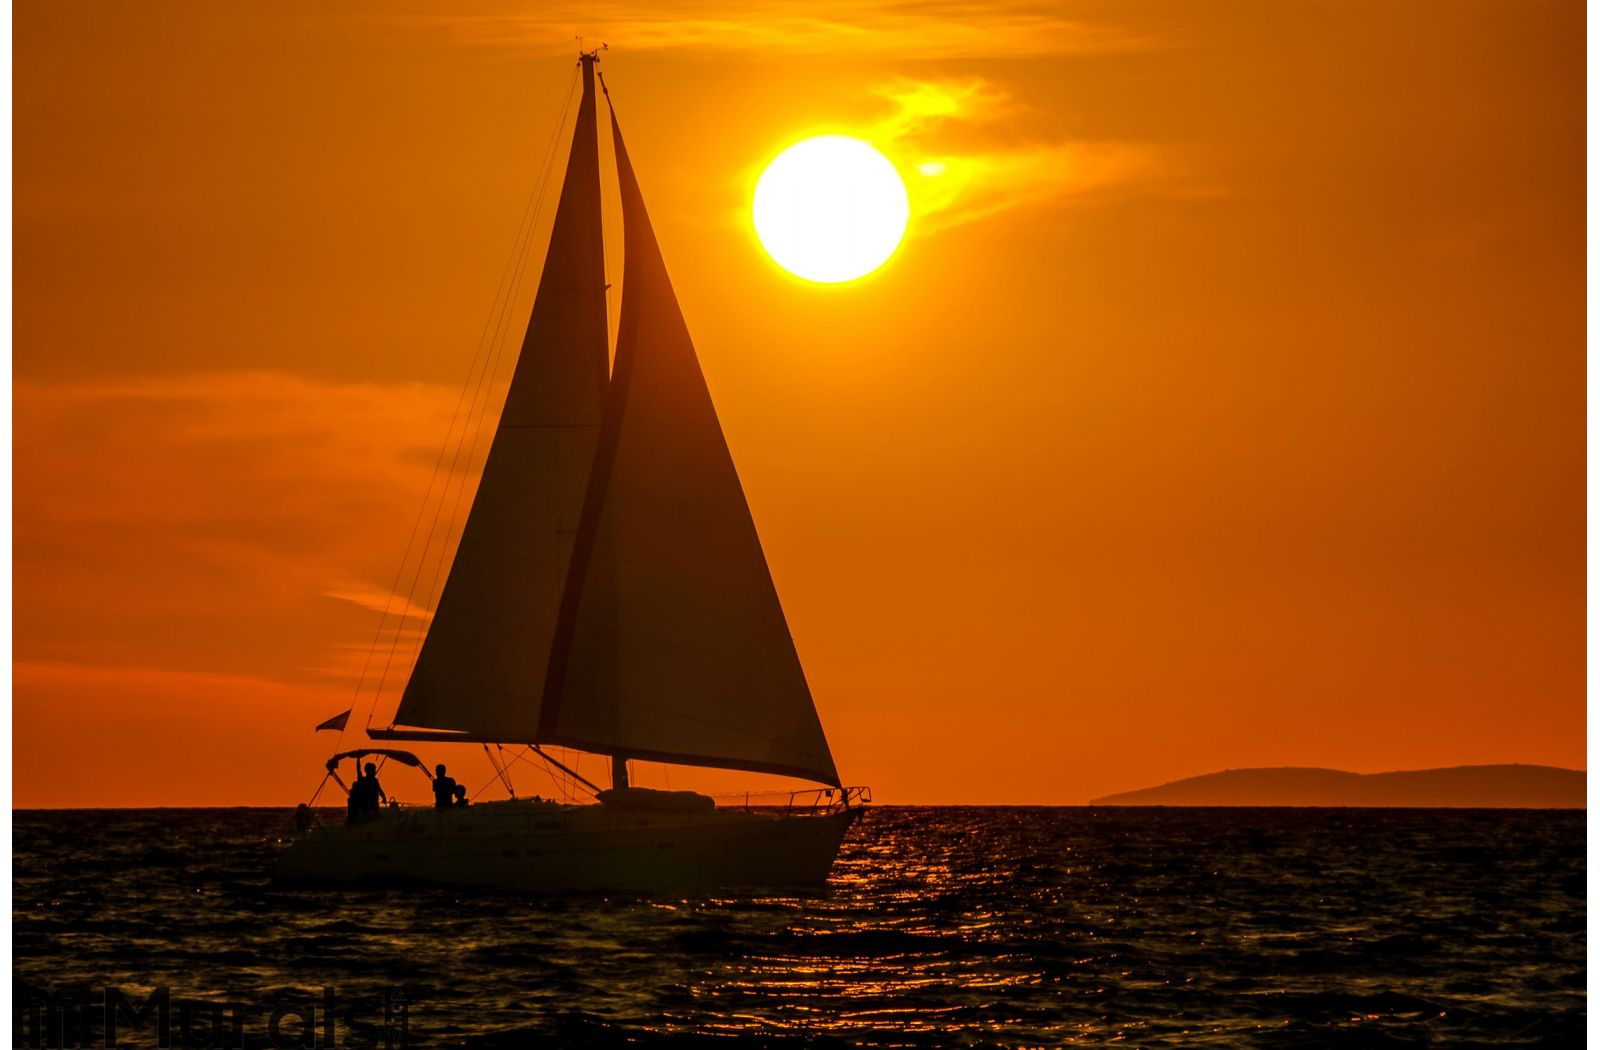 sailboat sunset orange sky wall mural